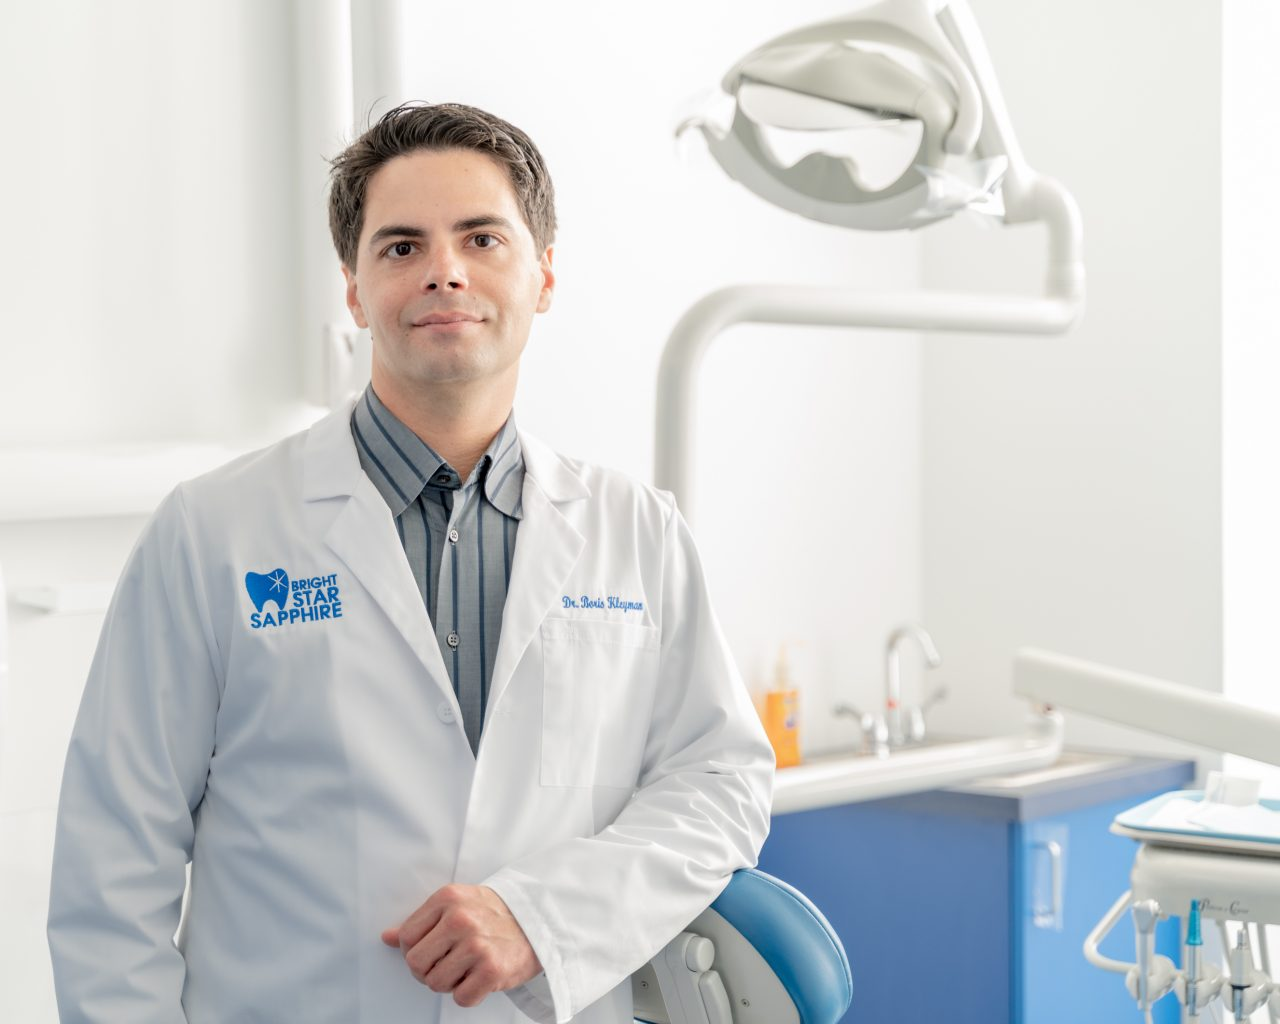 Call Dr. Boris Kleyman of Bright Star Sapphire Dental for gentle pediatric dentistry in Fair Lawn, NJ